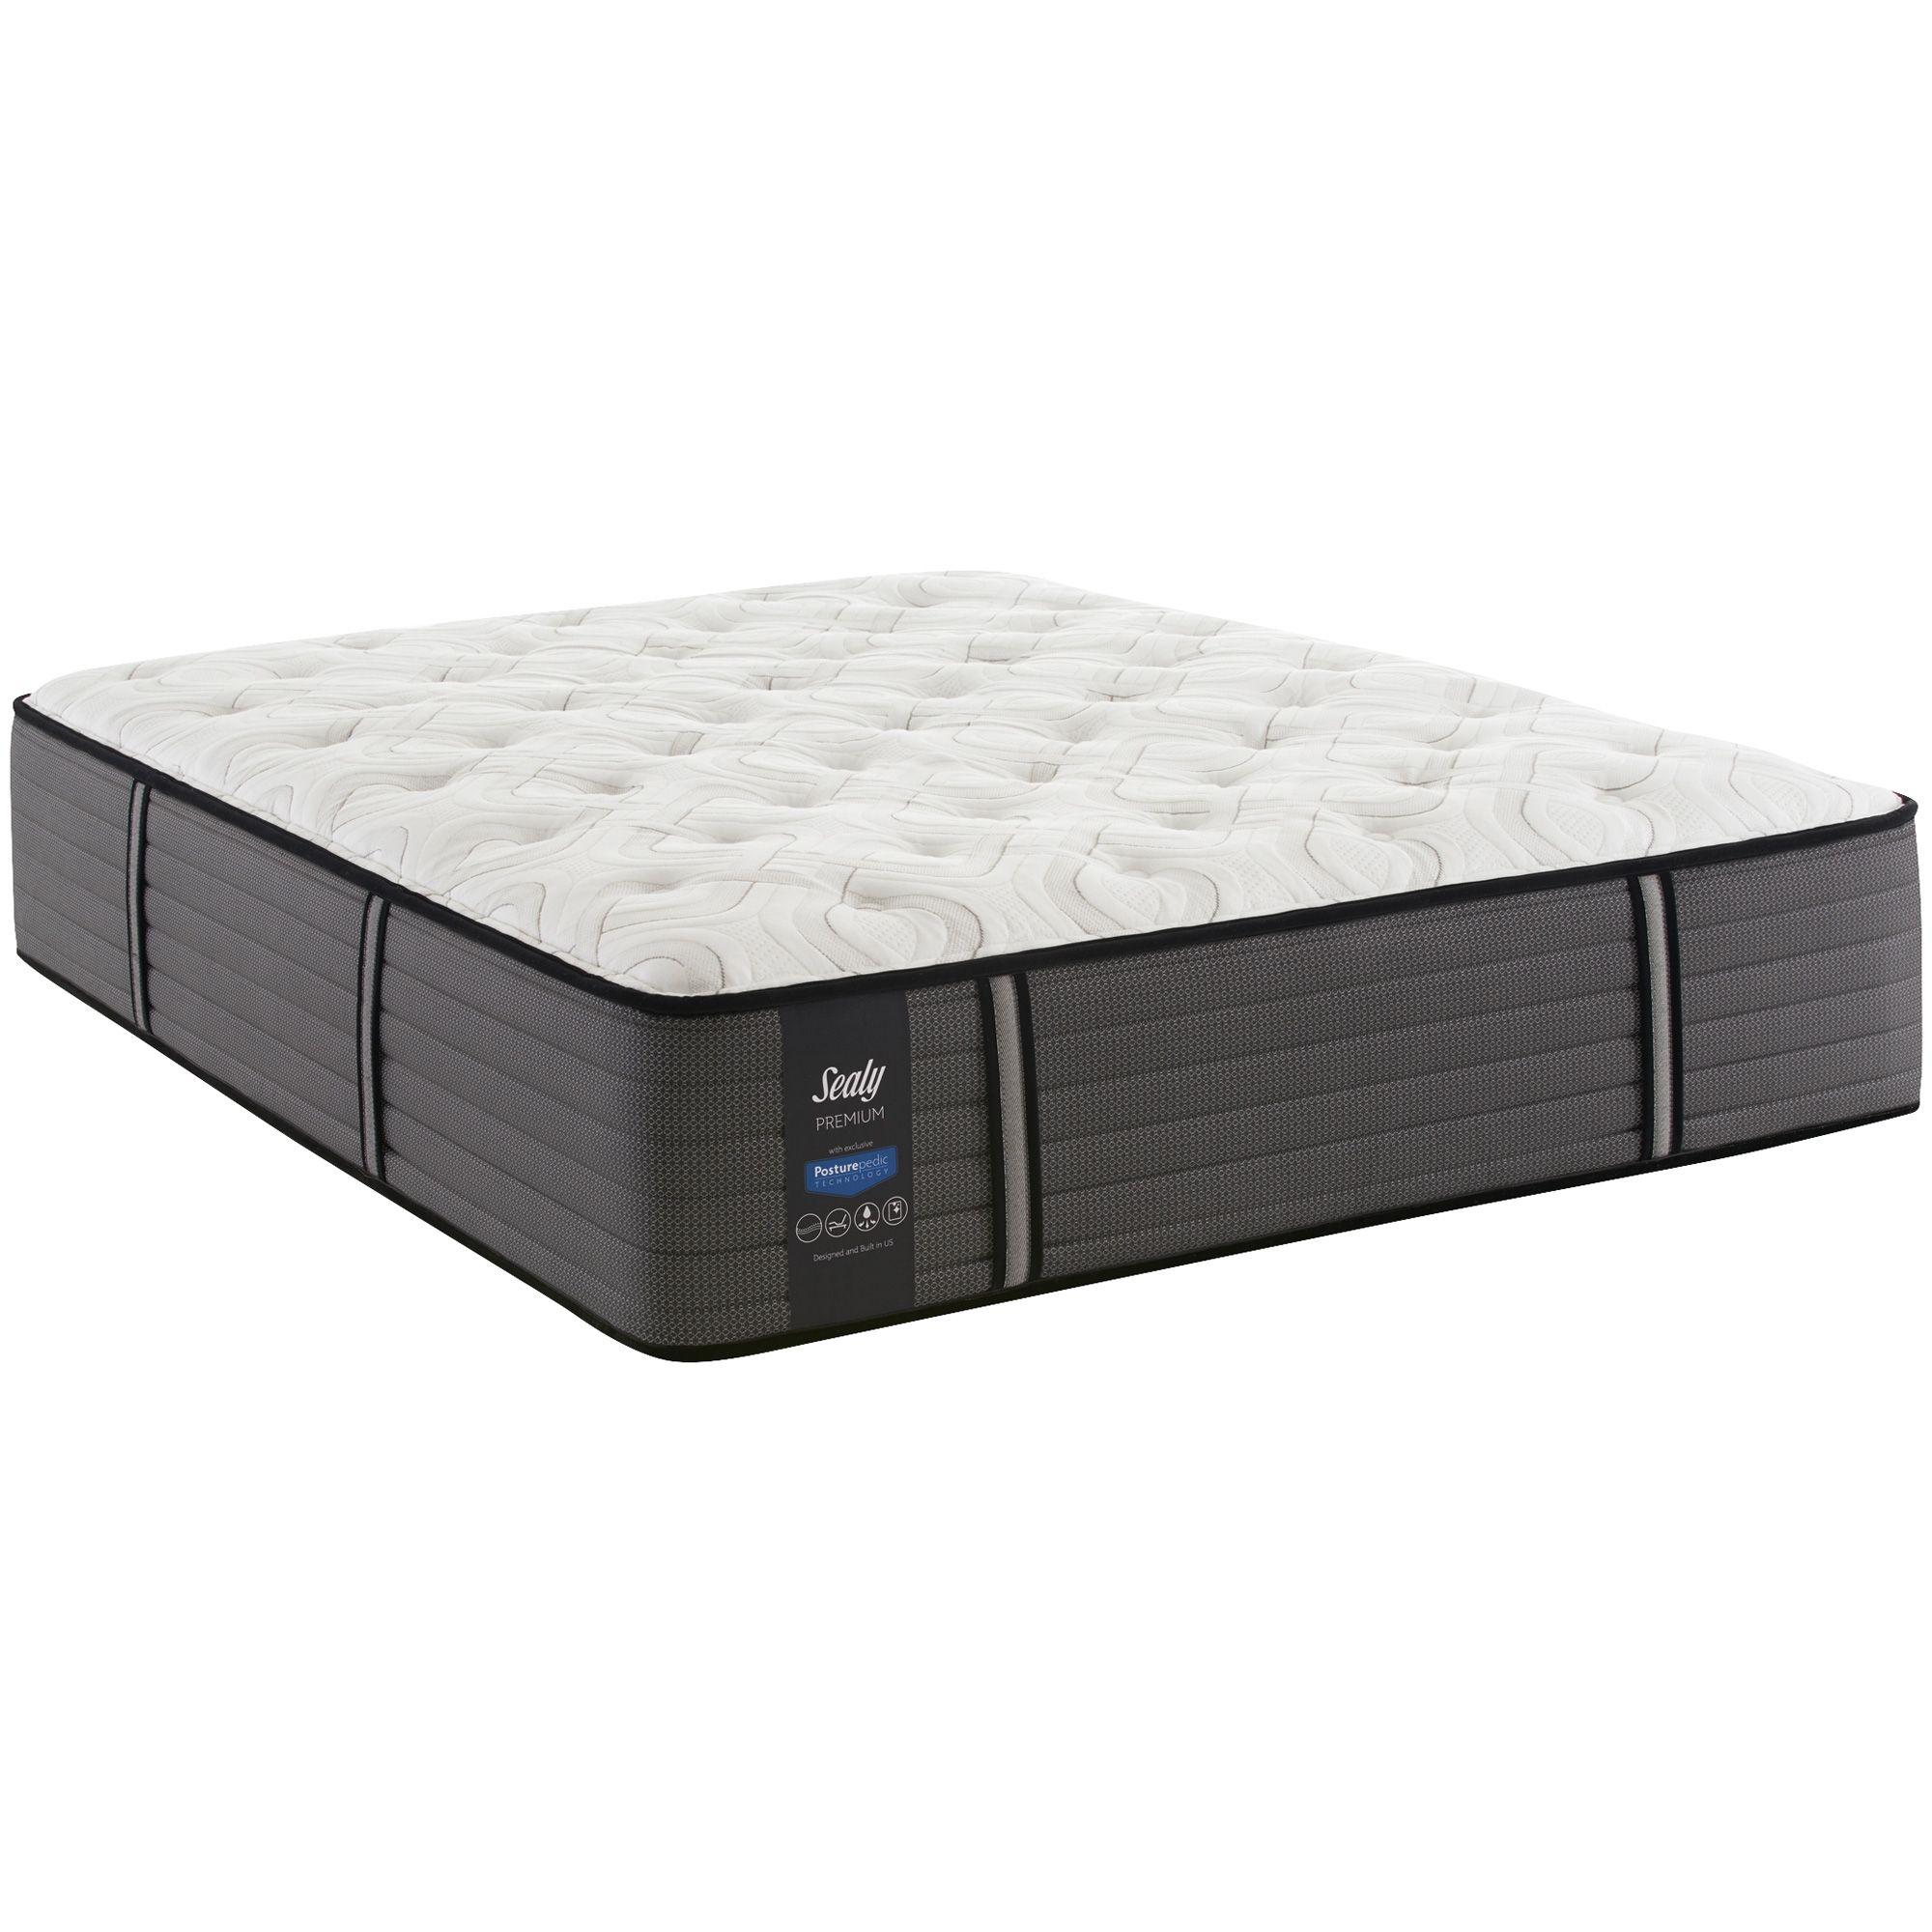 Sealy Perserverance Plush California King Mattress Plush Mattress